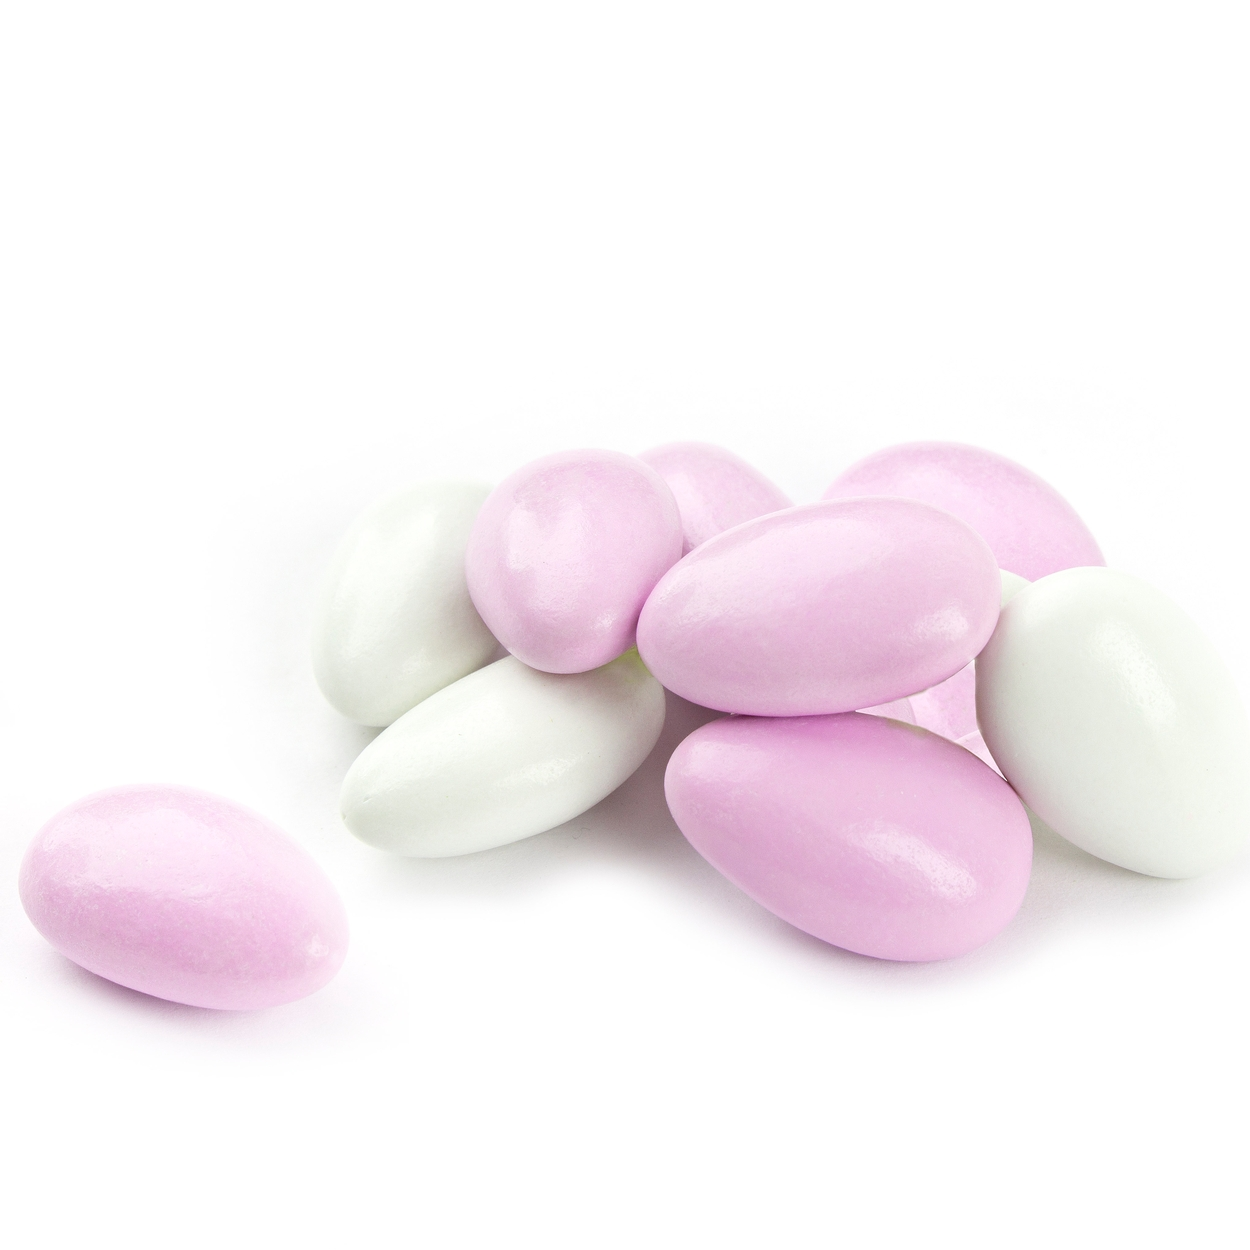 Christmas Colored Jordan Almonds With Super Fine Pink White Candy Bulk